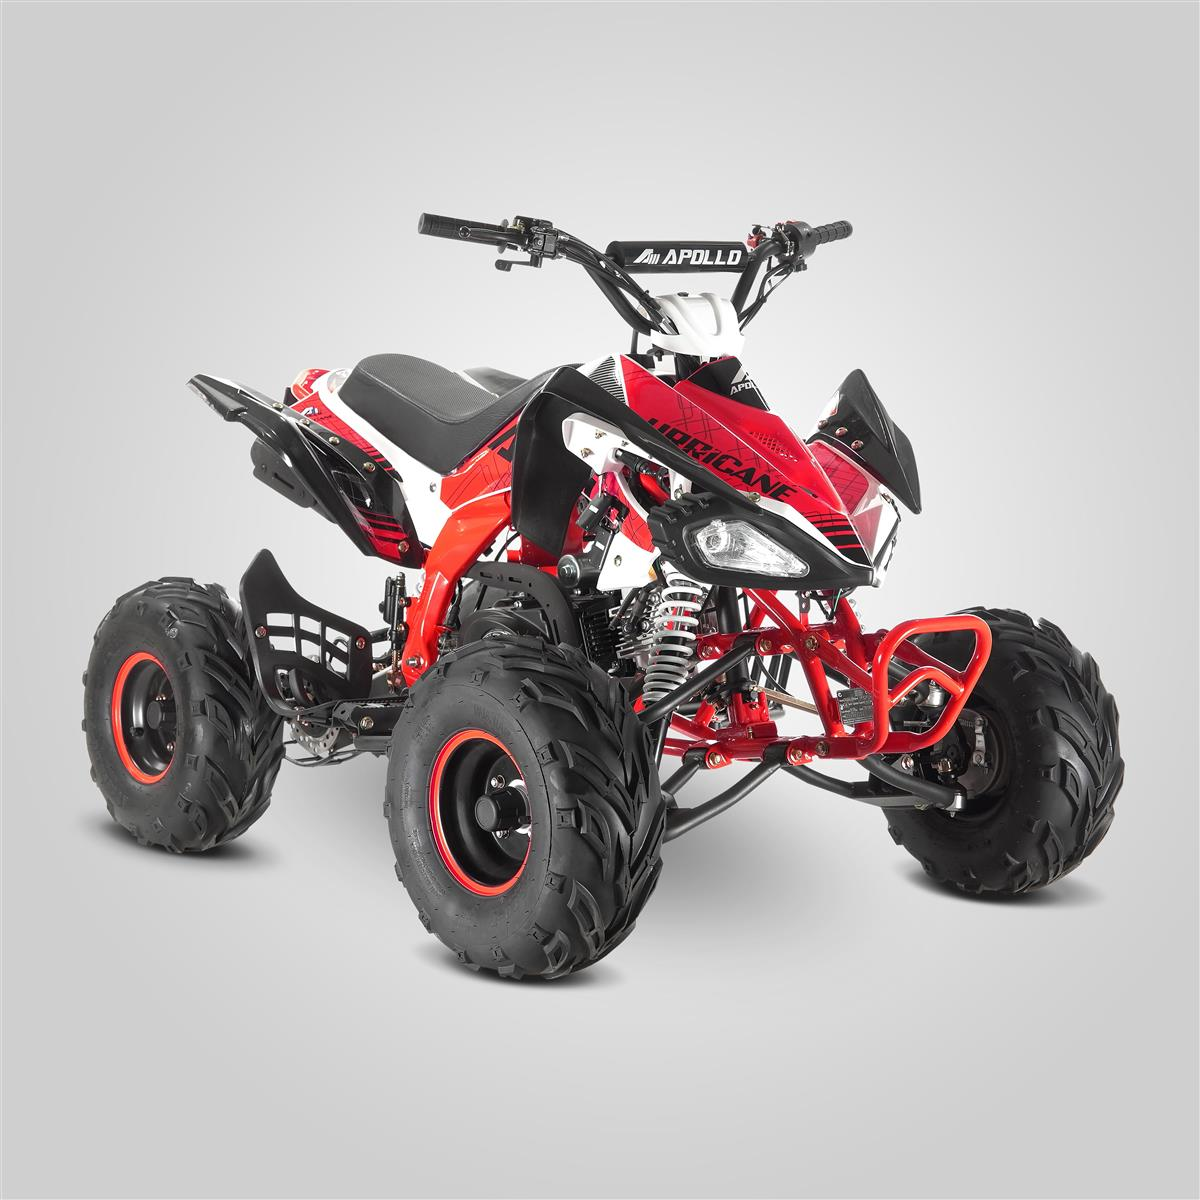 quad enfant apollo urricane rouge 125cc smallmx dirt bike pit bike quads minimoto. Black Bedroom Furniture Sets. Home Design Ideas